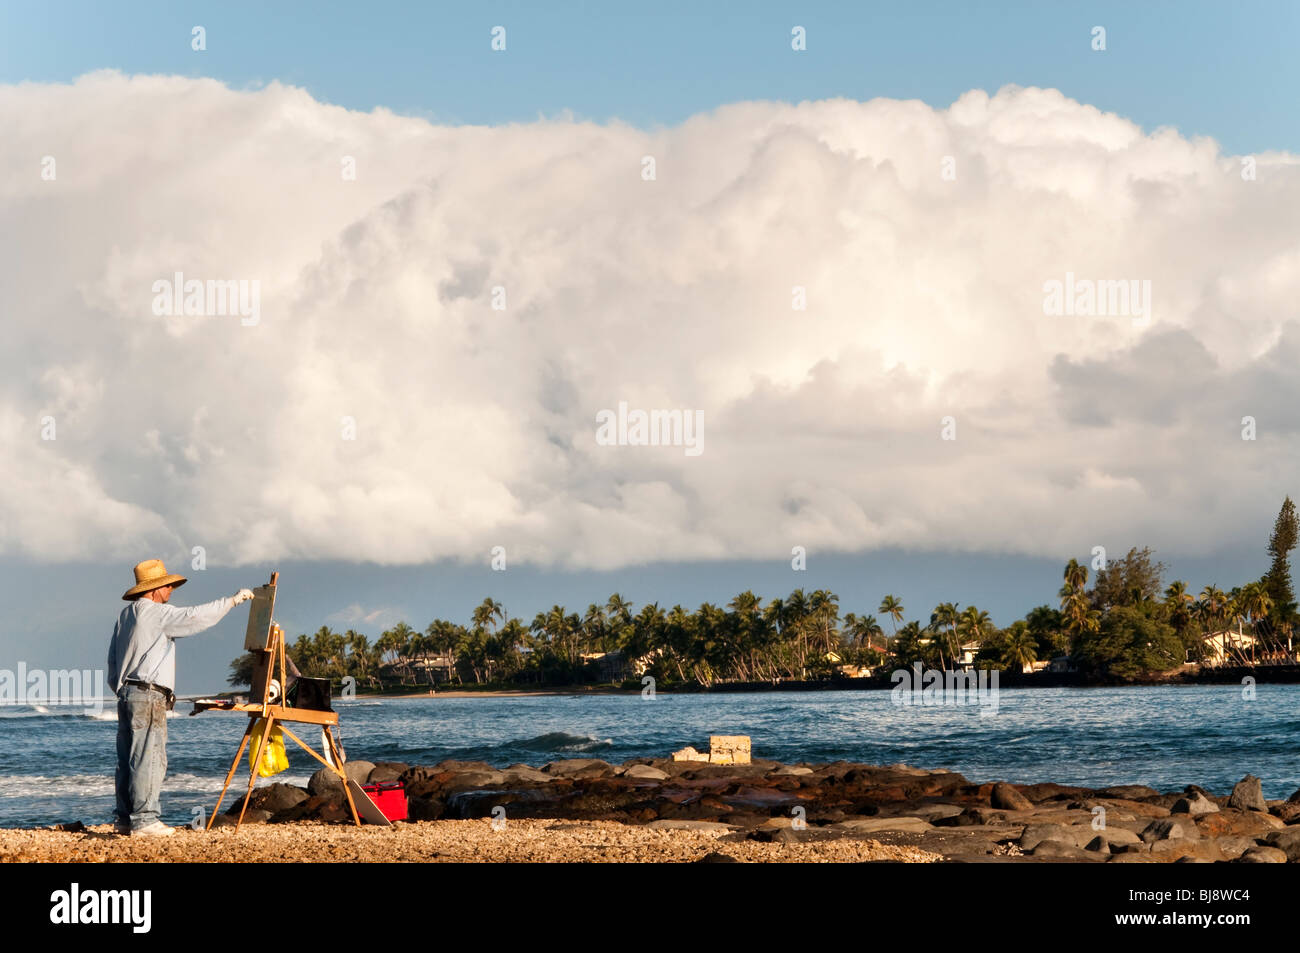 'Plein Air' artist painting at Lahaina Harbor Maui Hawaii.  Giant clouds over Molokai in the background - Stock Image